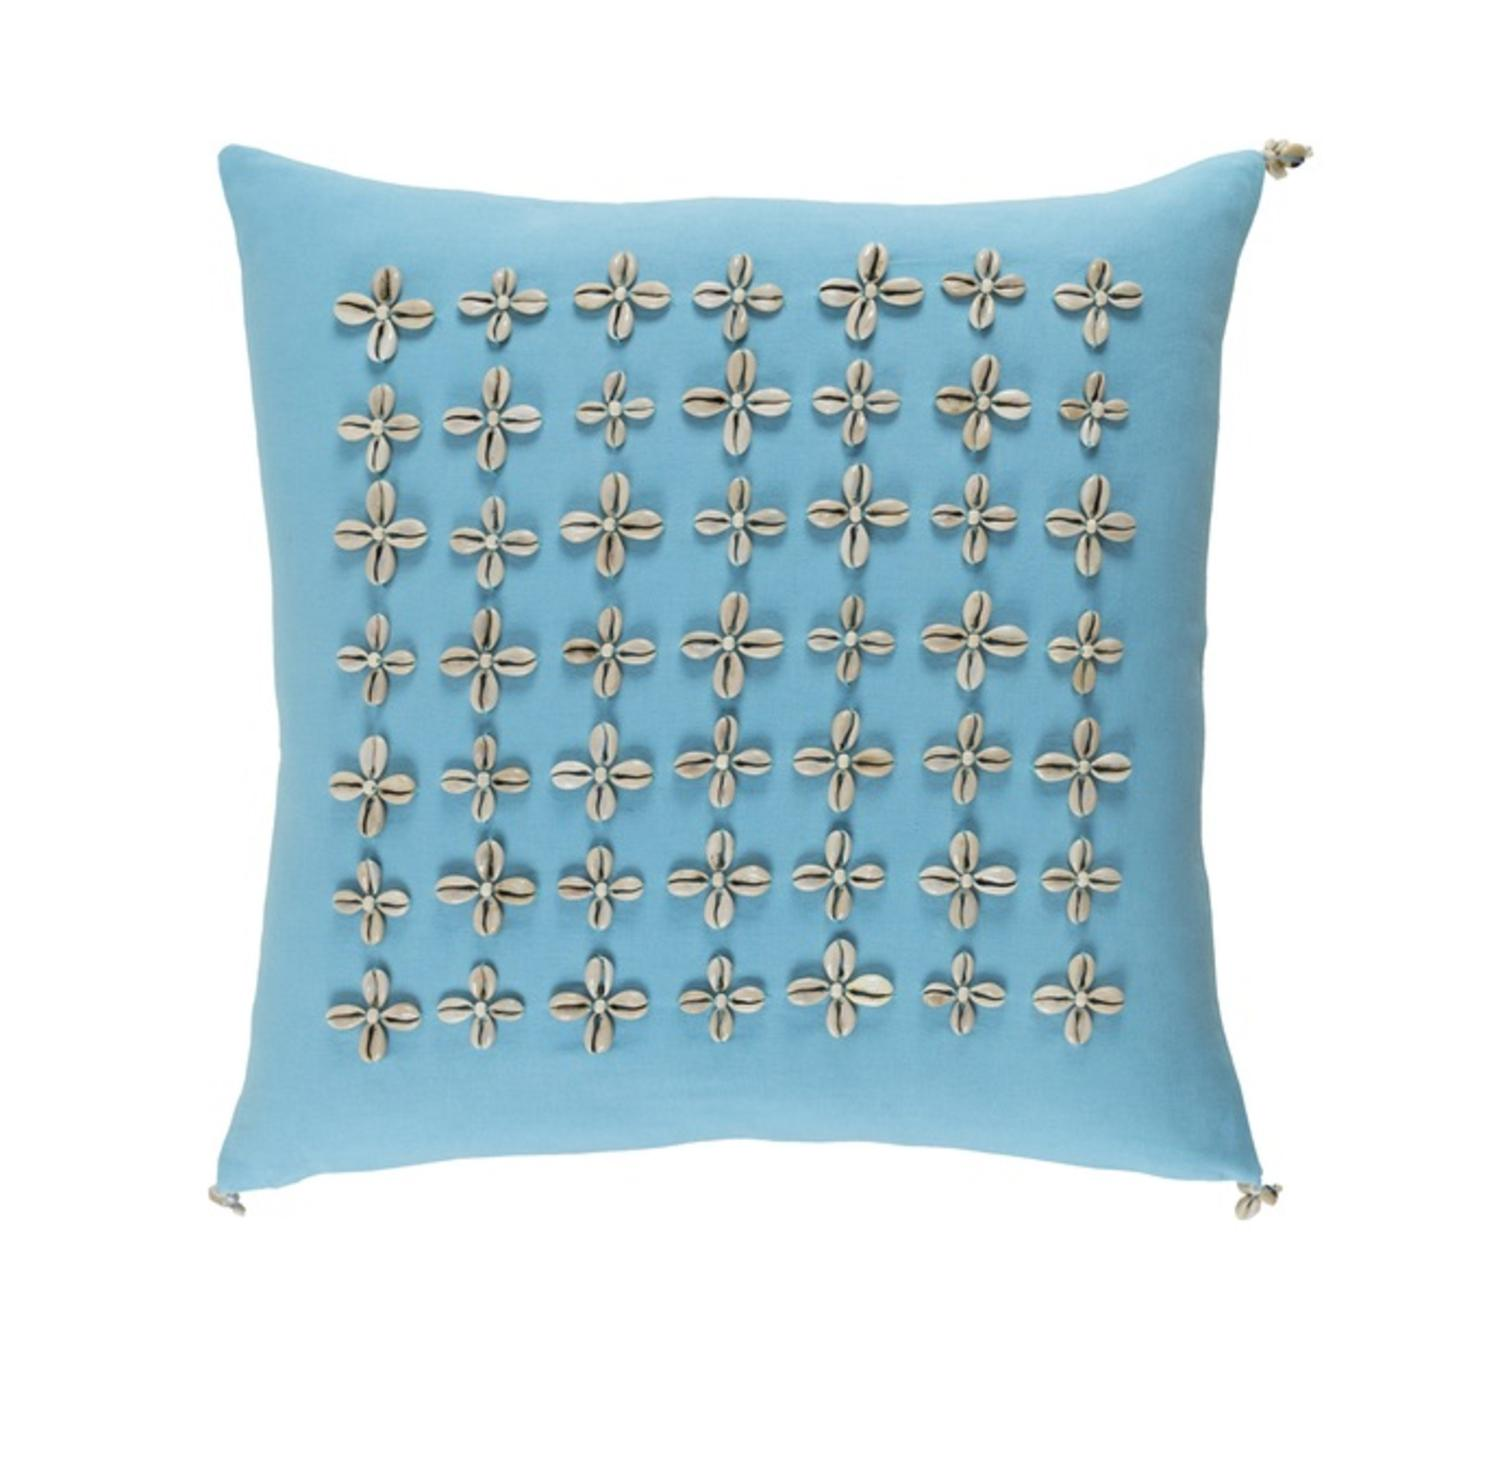 Powder Blue Decorative Pillows : 22